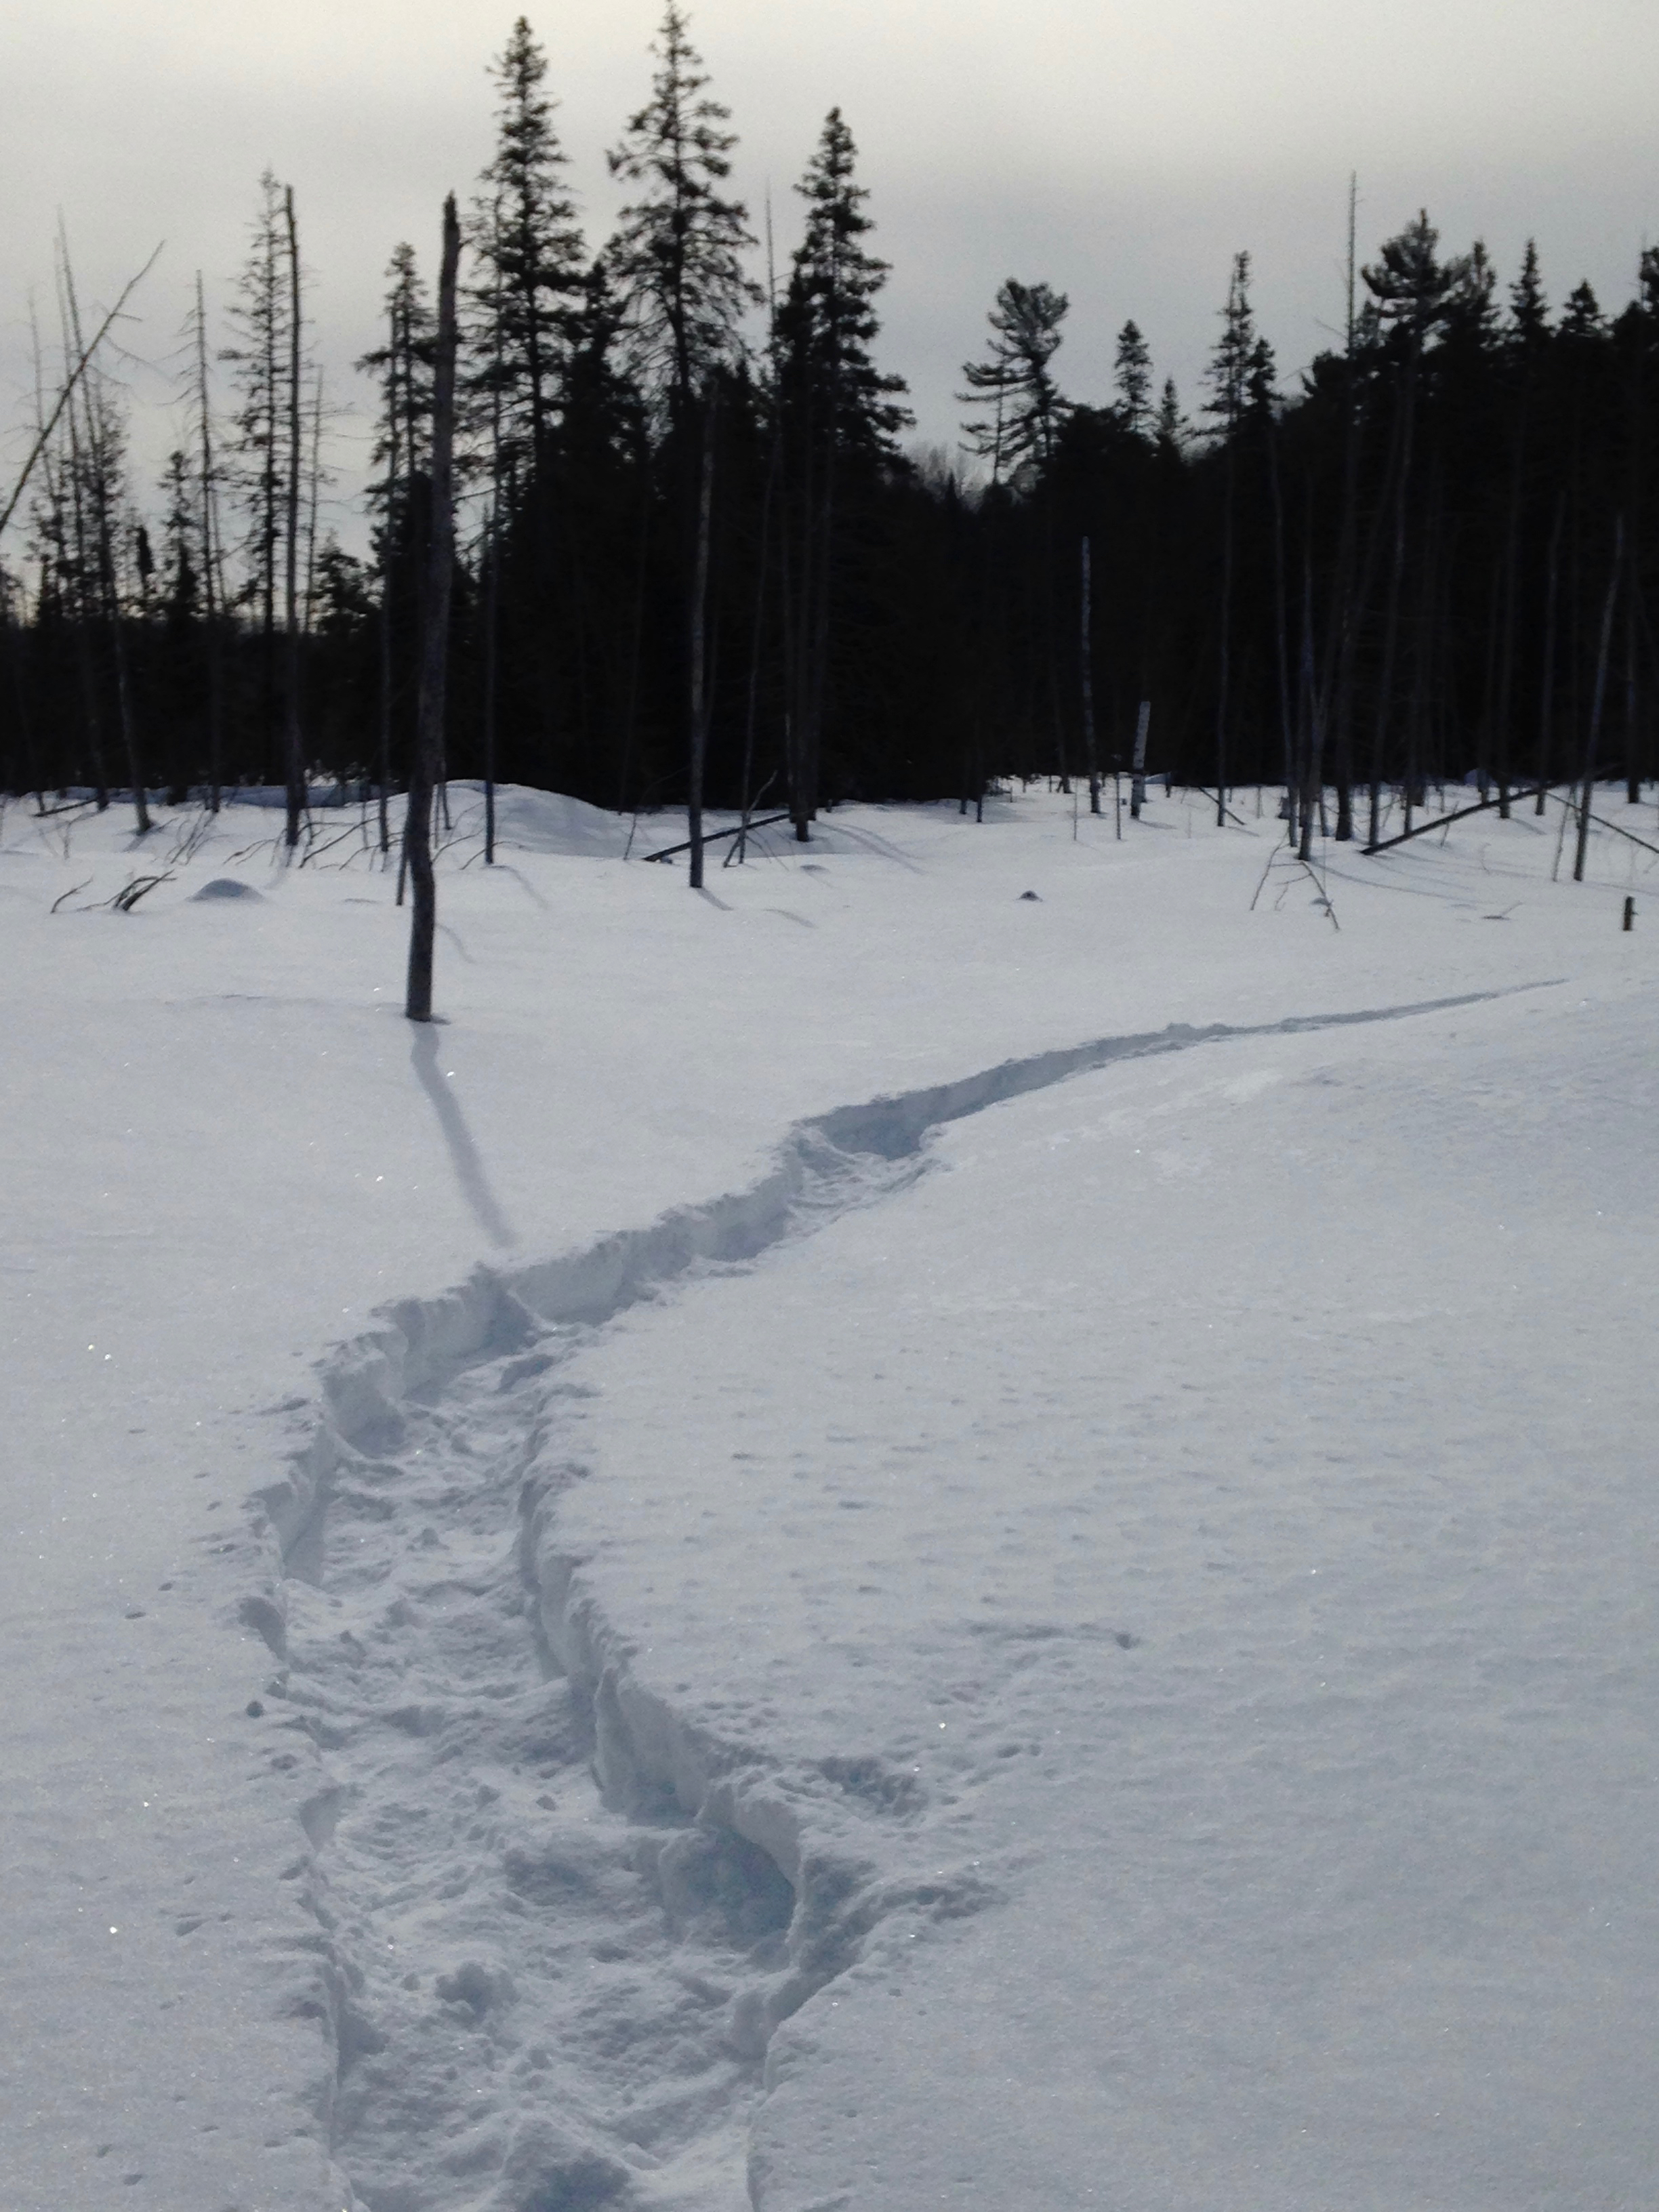 Make Tracks on Our Extensive Snowshoe Trail Network